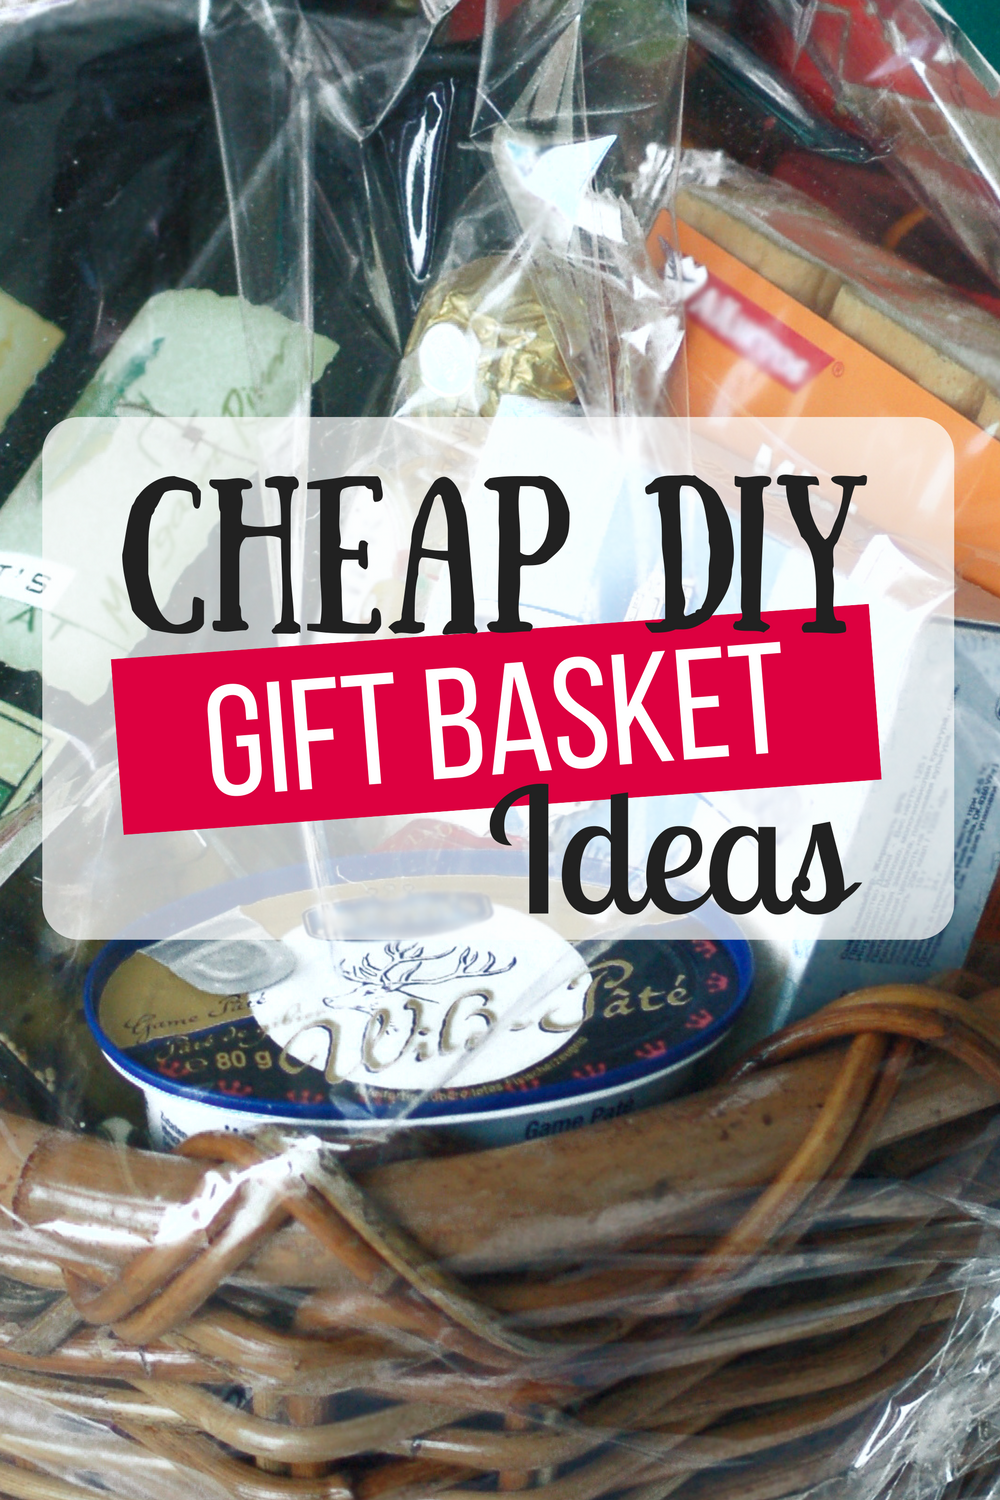 cheap diy gift baskets ideas perfect timing so many great ideas i was